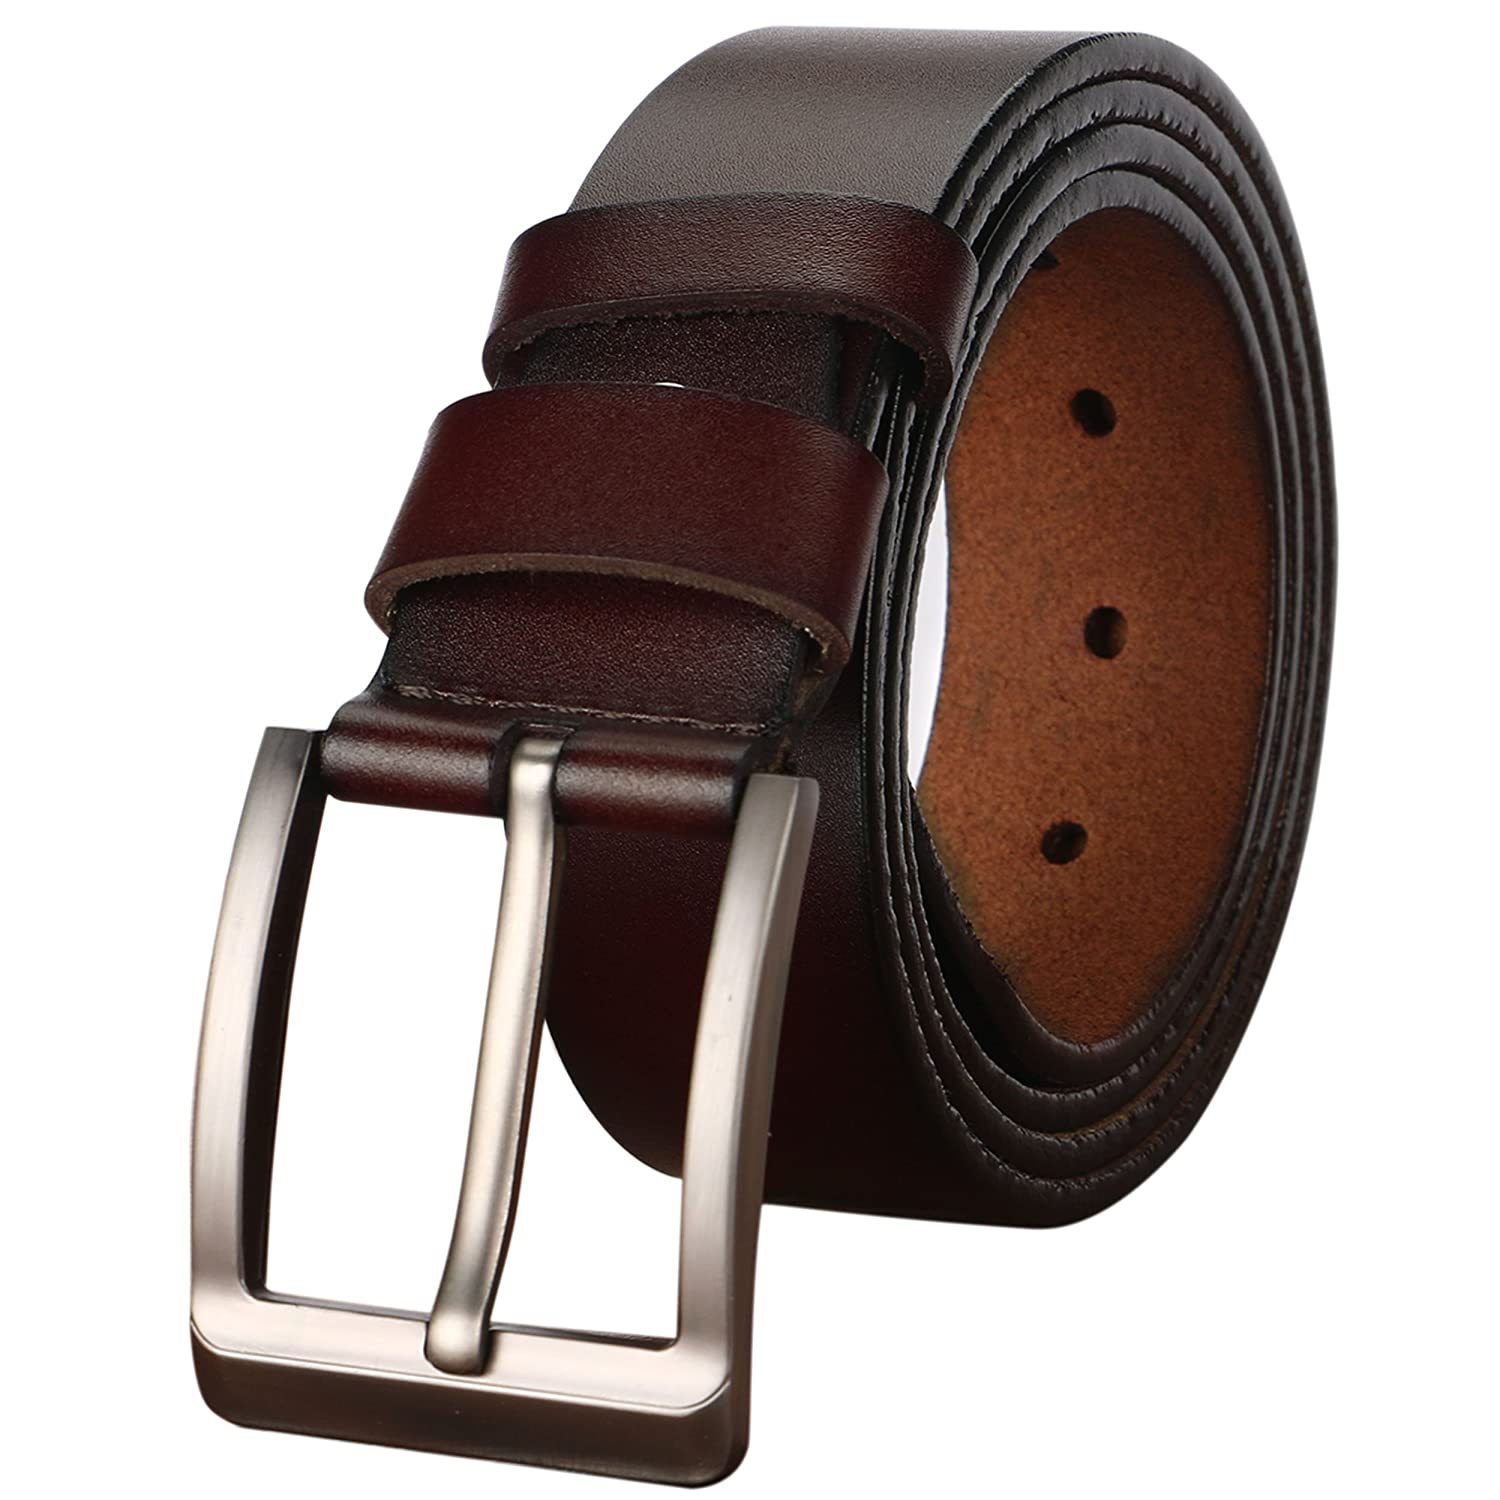 Men's belt, Gifny's Cowhide Genuine Leather Belt for Men 1 1/2 38mm Trim to Fit Men' s belt